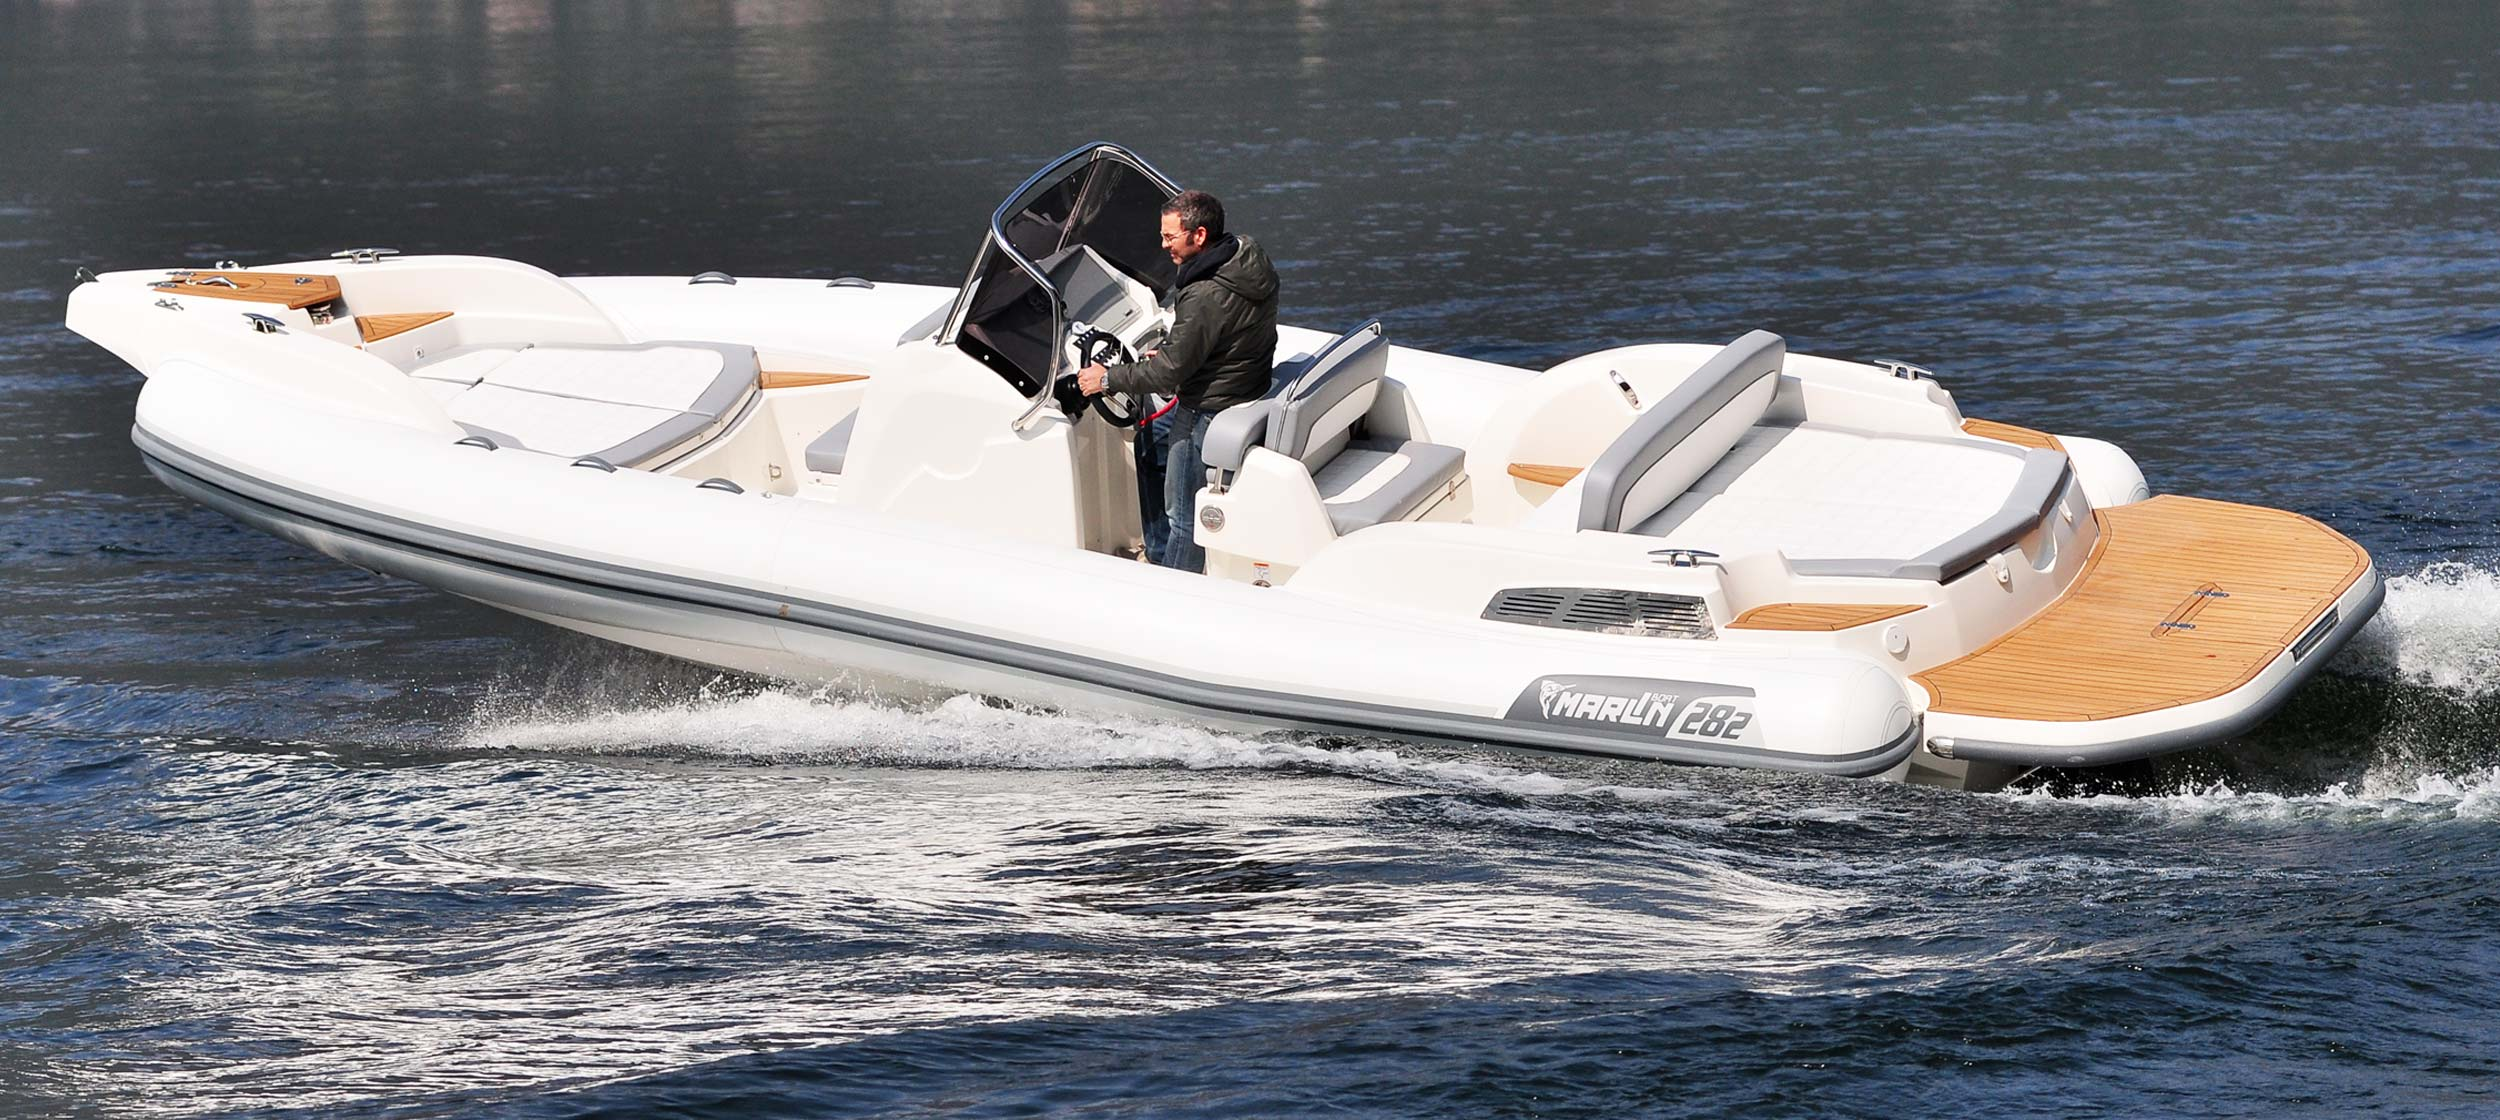 Marlin Boat - Inboard model  282